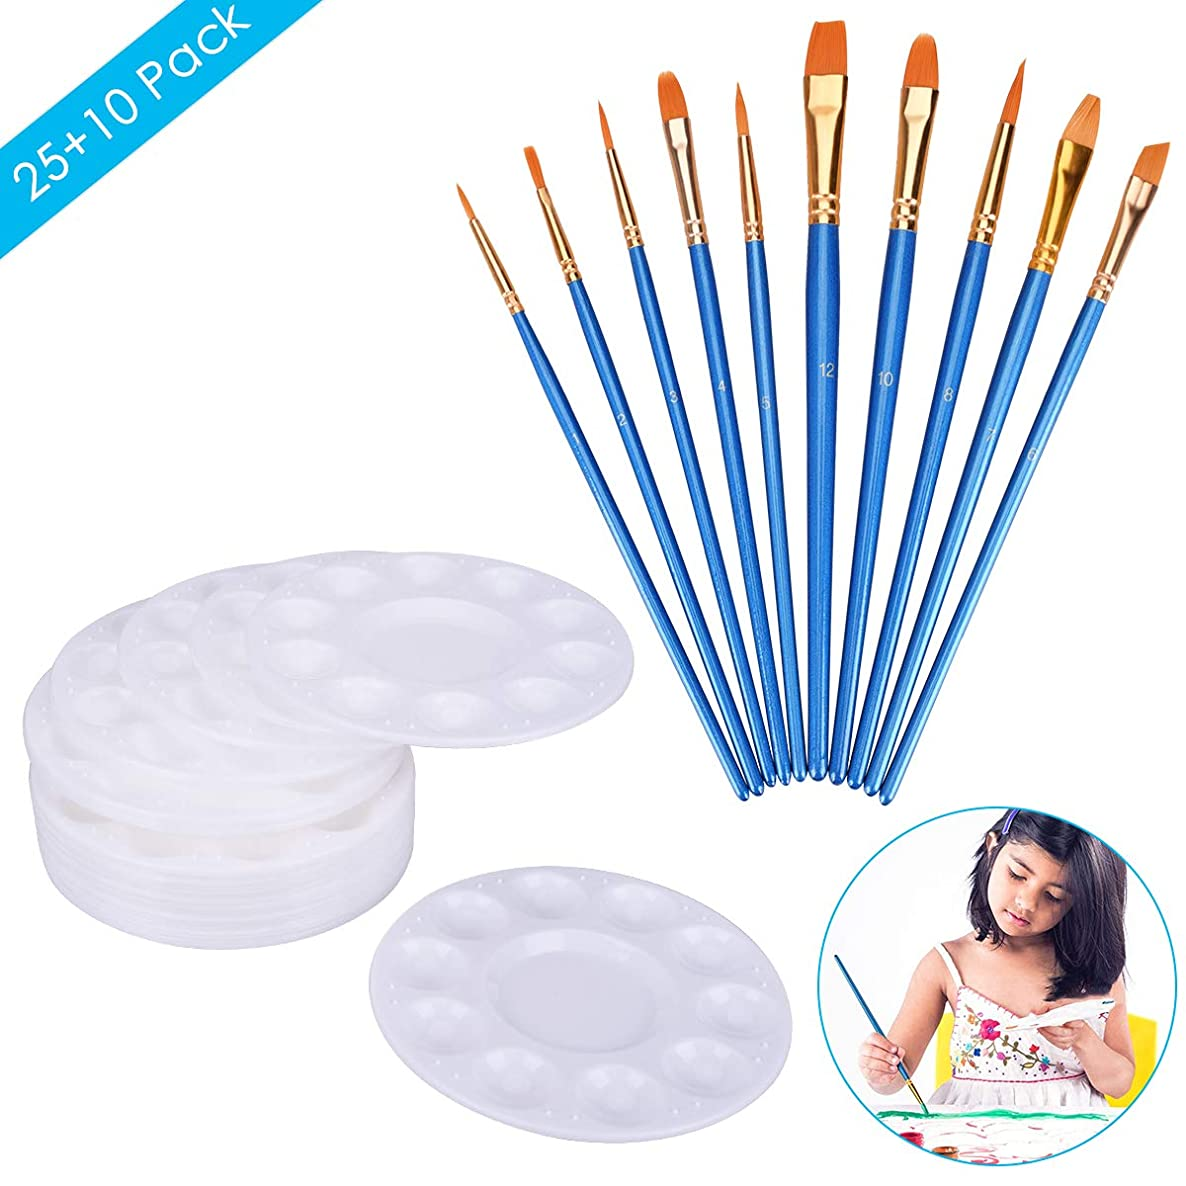 TinTop 35 Pcs Paint Brush Set 25pcs Paint Tray Palette and 10 Nylon Hair Brushes Pointed Tip Nylon Hair Paintbrush for Kids Students Beginners